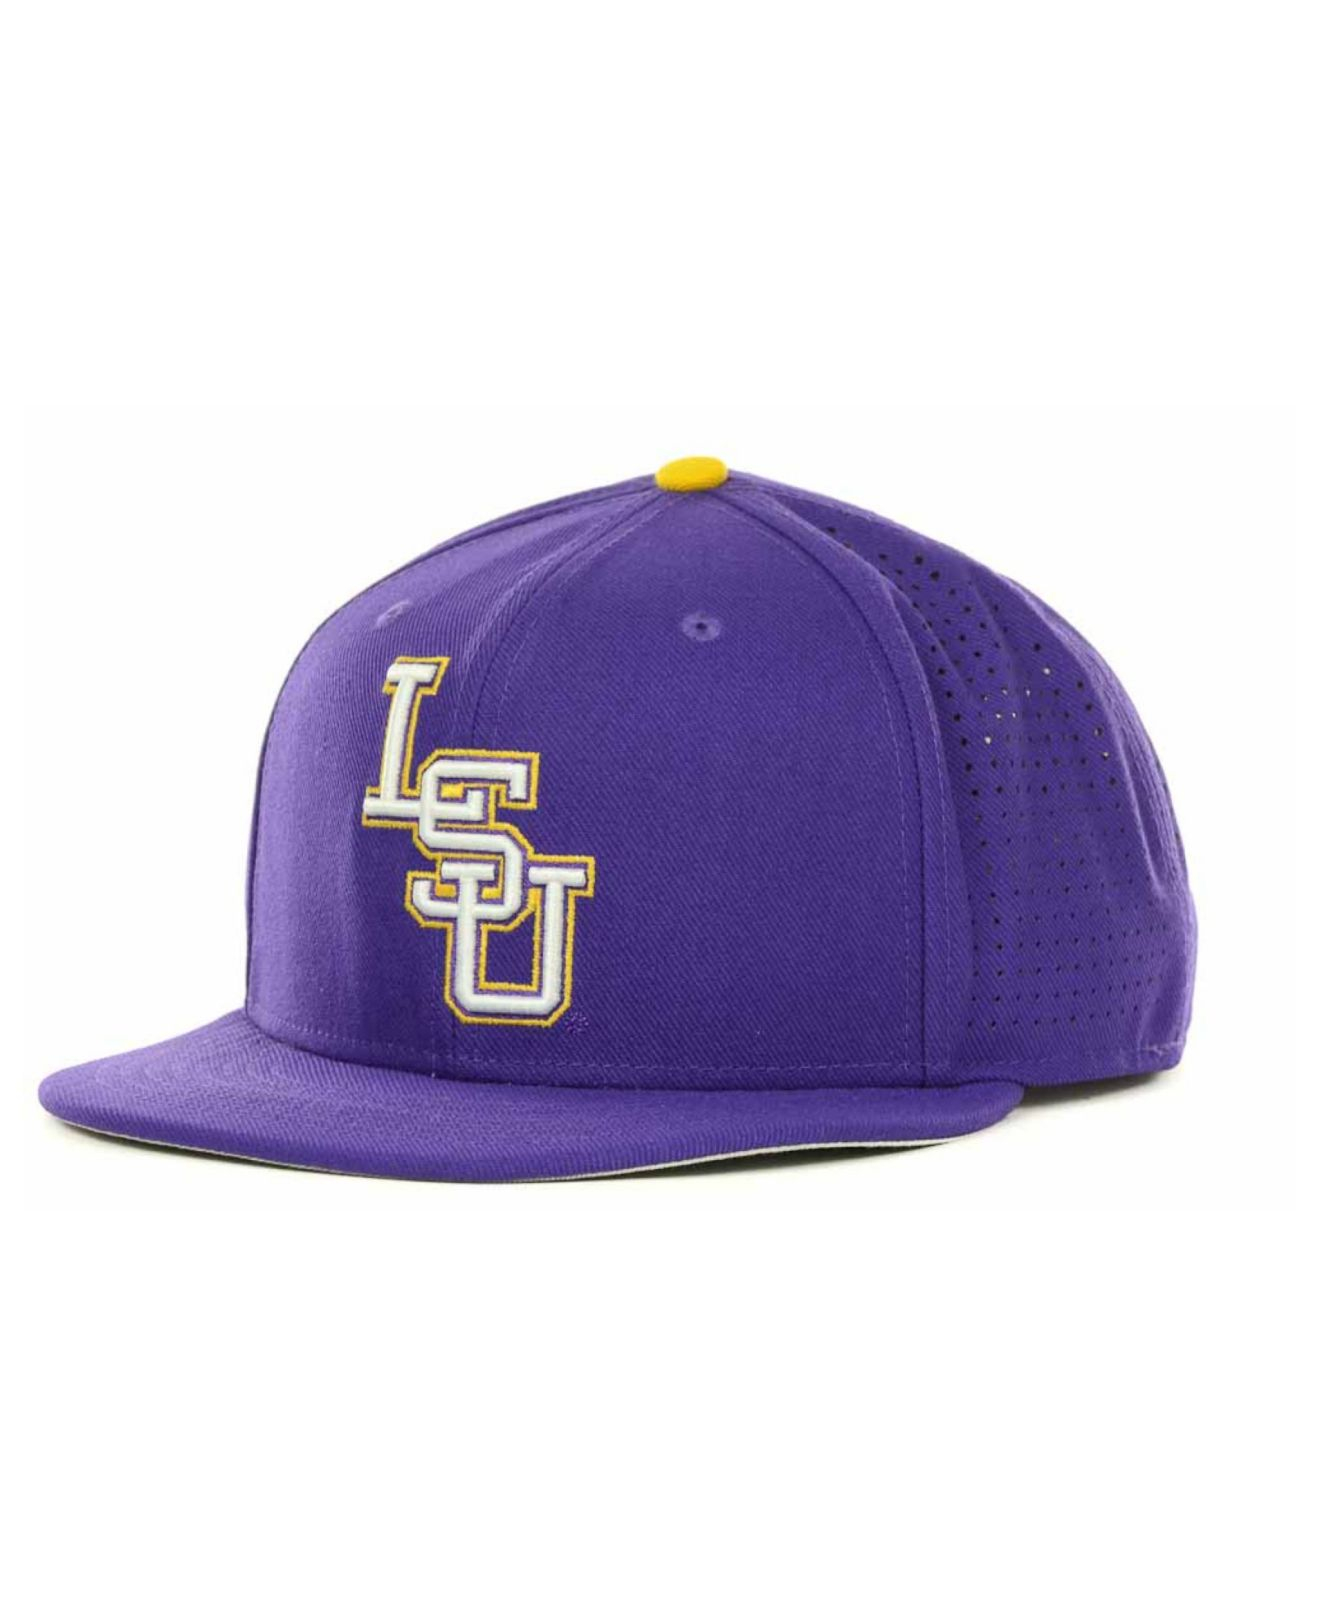 ... cheap lyst nike lsu tigers ncaa authentic vapor fitted cap in purple  for men d7d77 a05c4 0e3629efdb3